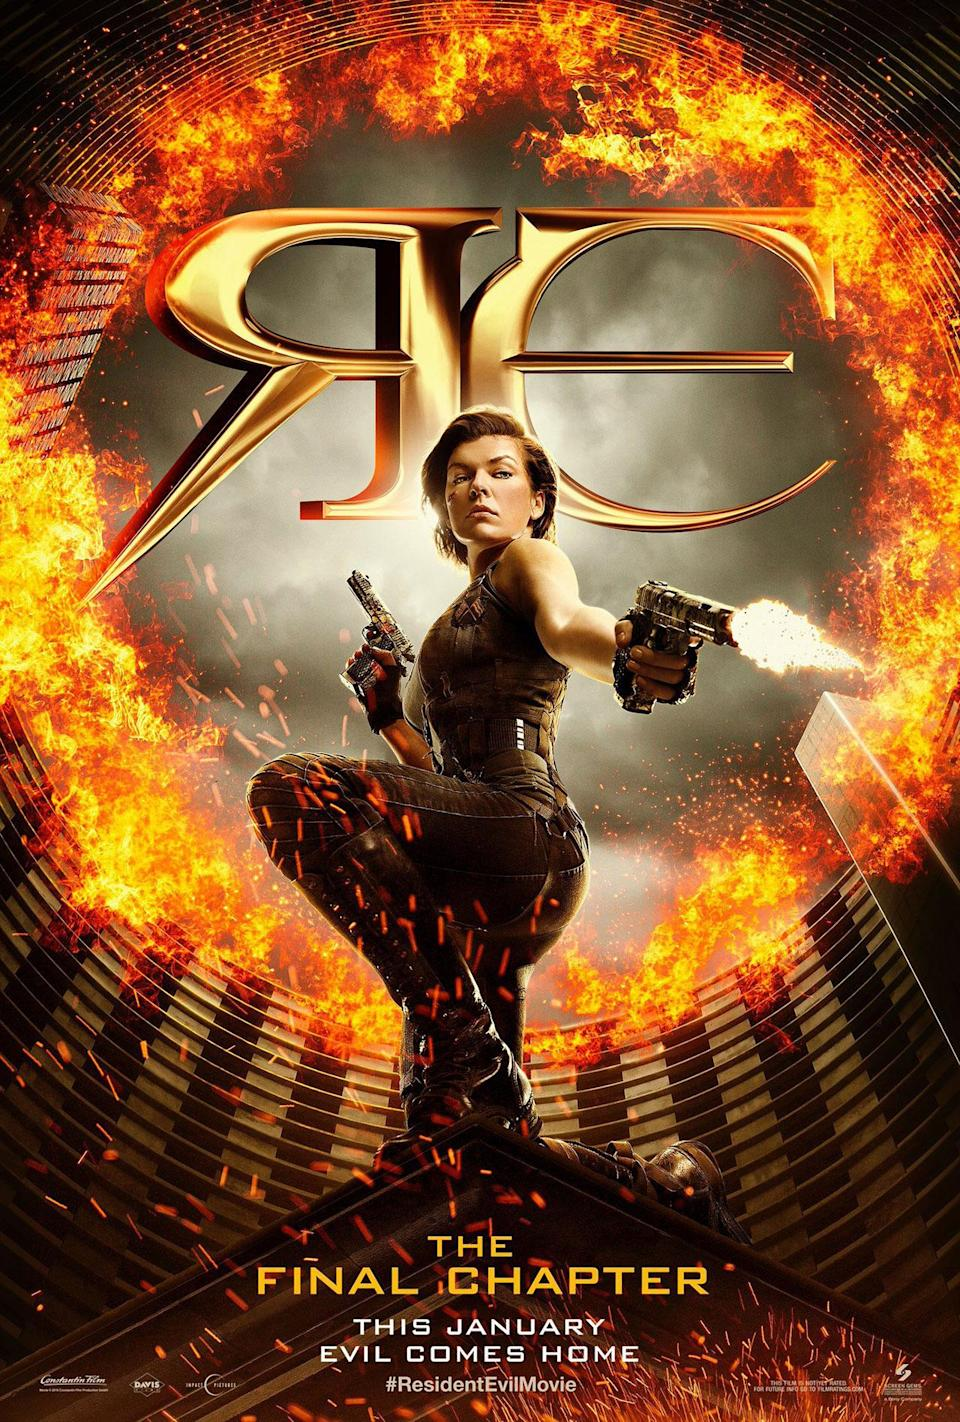 <p>This Hunger Games-aping poster for the final 'Resident Evil' film is a masterclass in how NOT to do perspective. Alice's head is WAY too big for her body, while her feet just seem ginormous. (Credit: Screen Gems) </p>